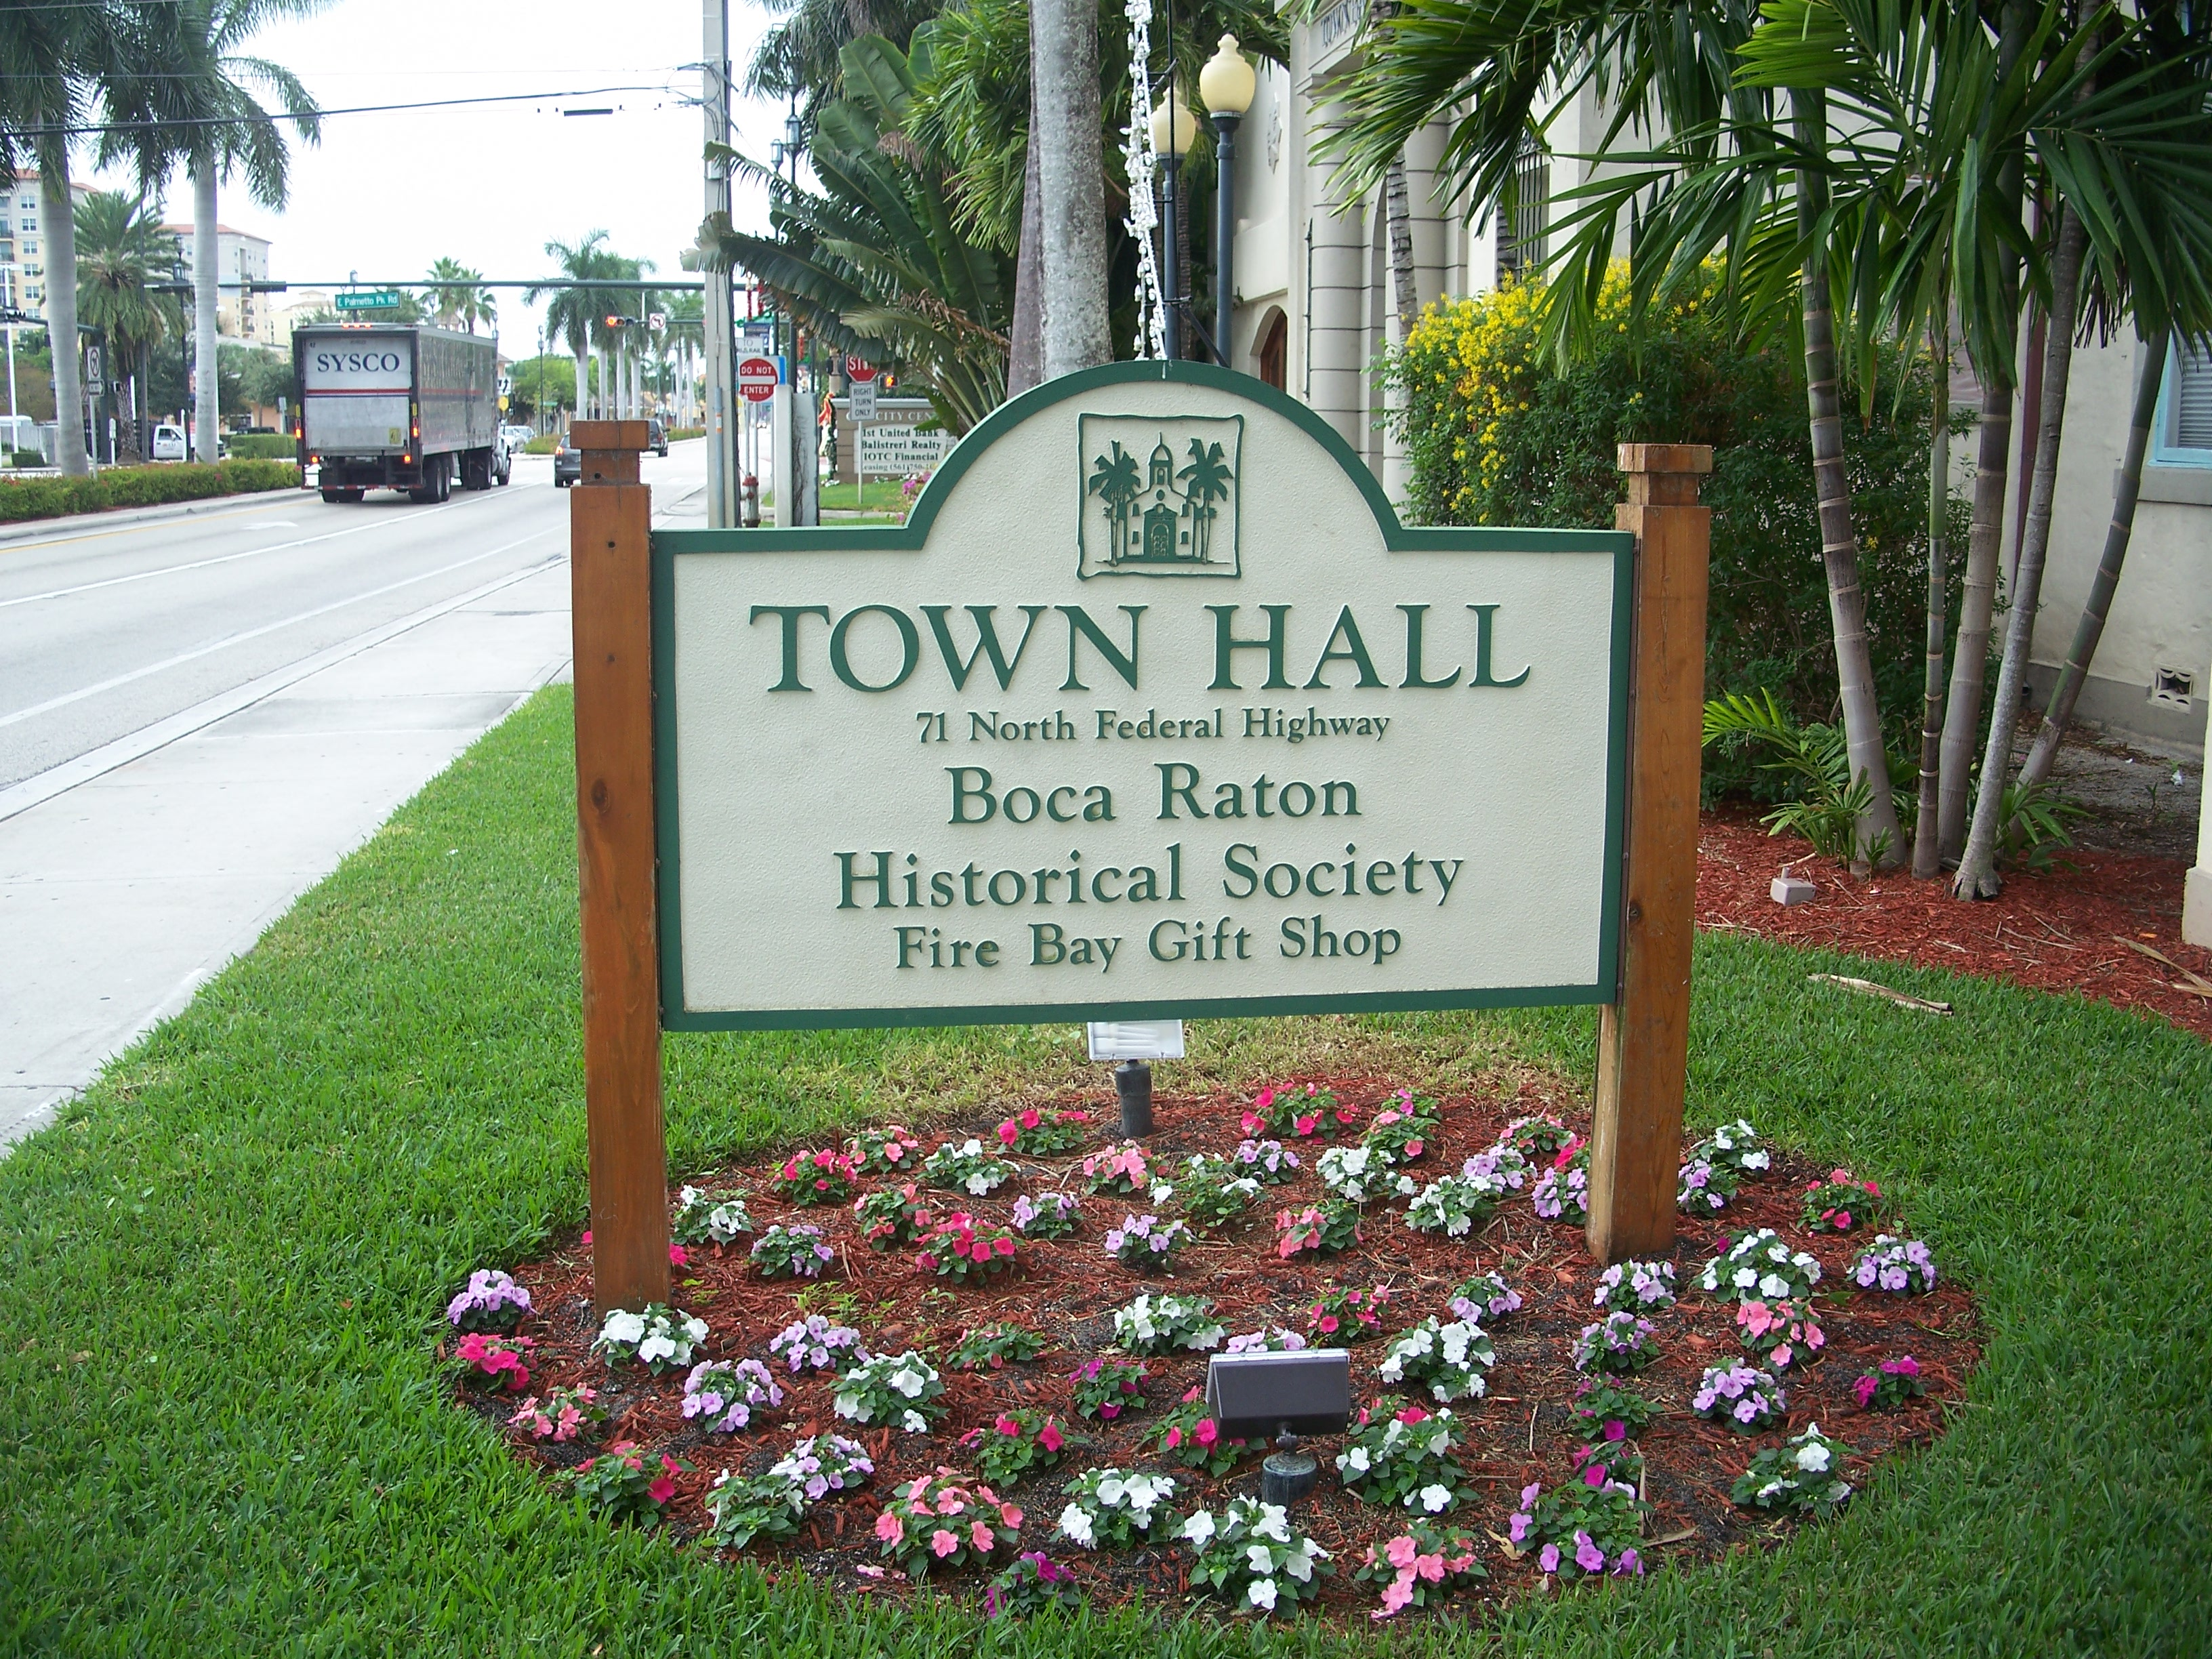 File:Boca Raton FL Old Cityraton city